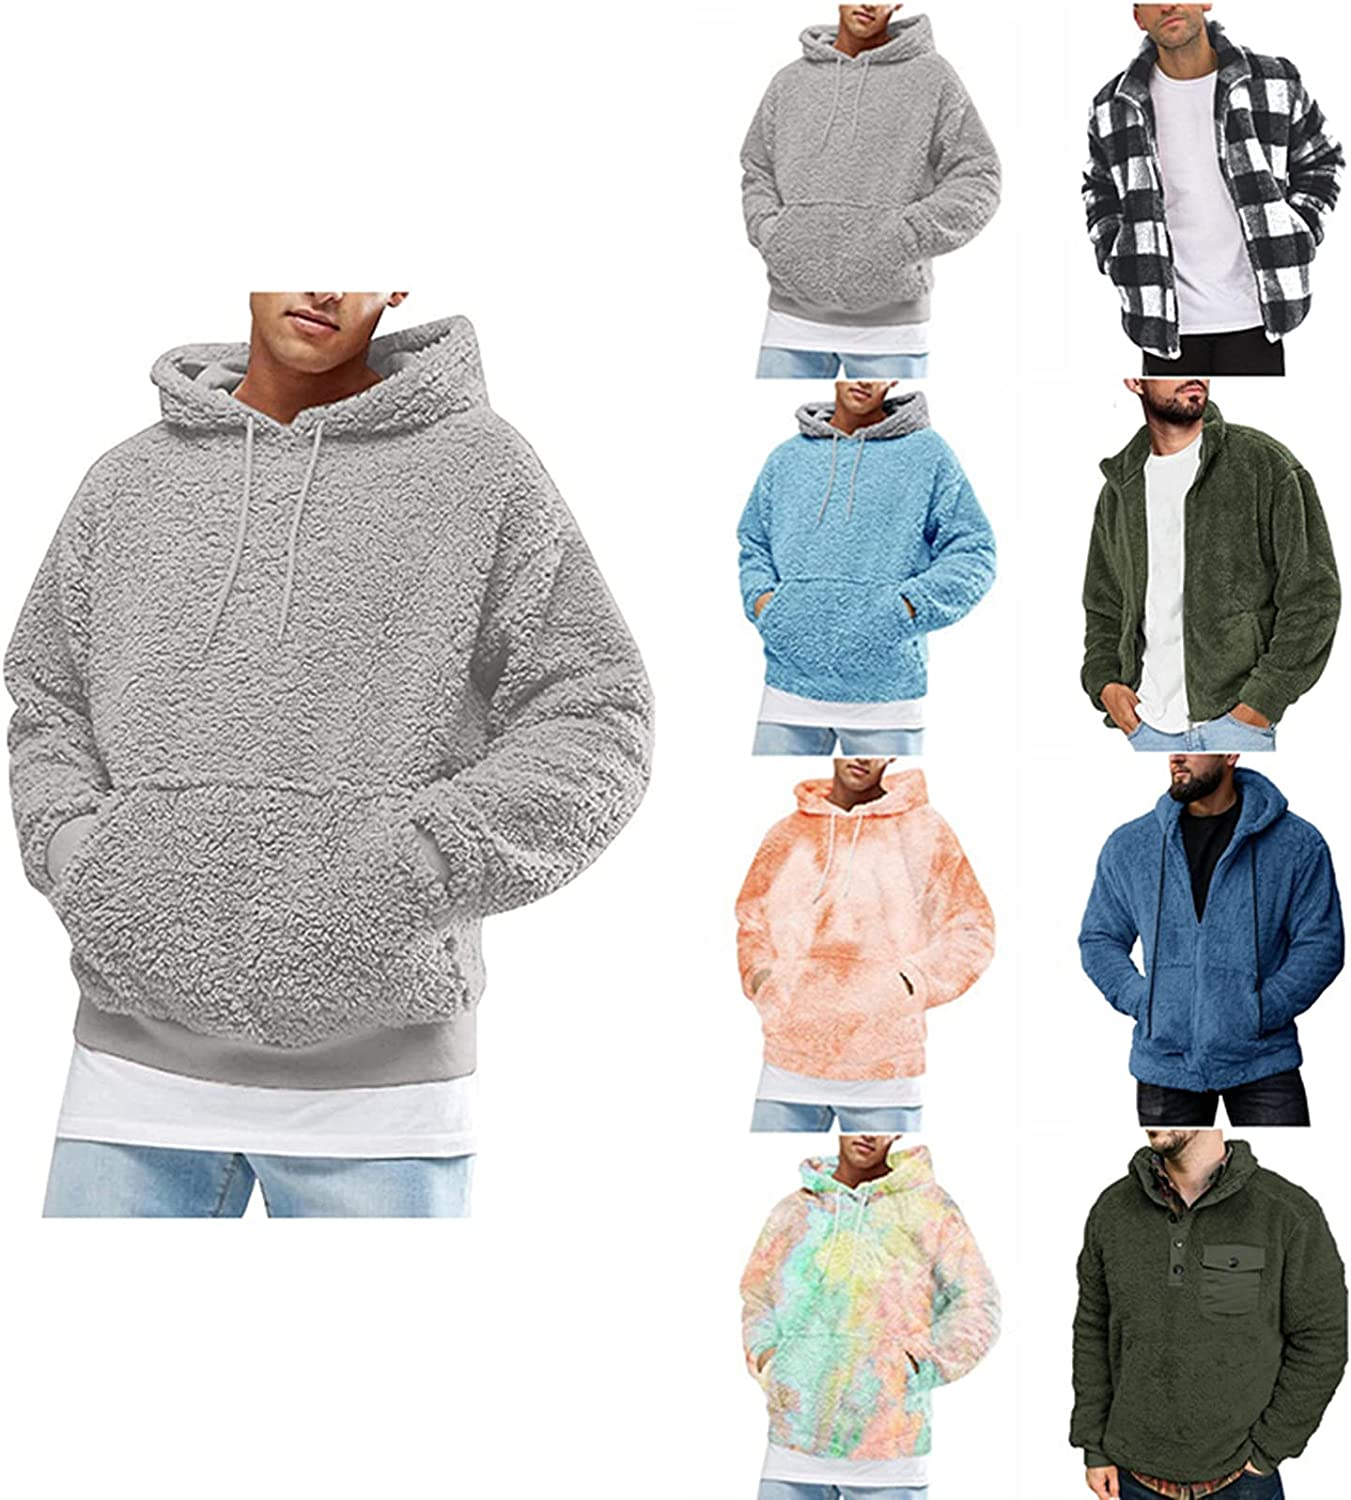 Qsctys Hoodies for Men Fuzzy Sherpa Pullover Hoodie Sweatshirts Crewneck Long Sleeve Sport Fall Outwear Winter Hooded Shirts